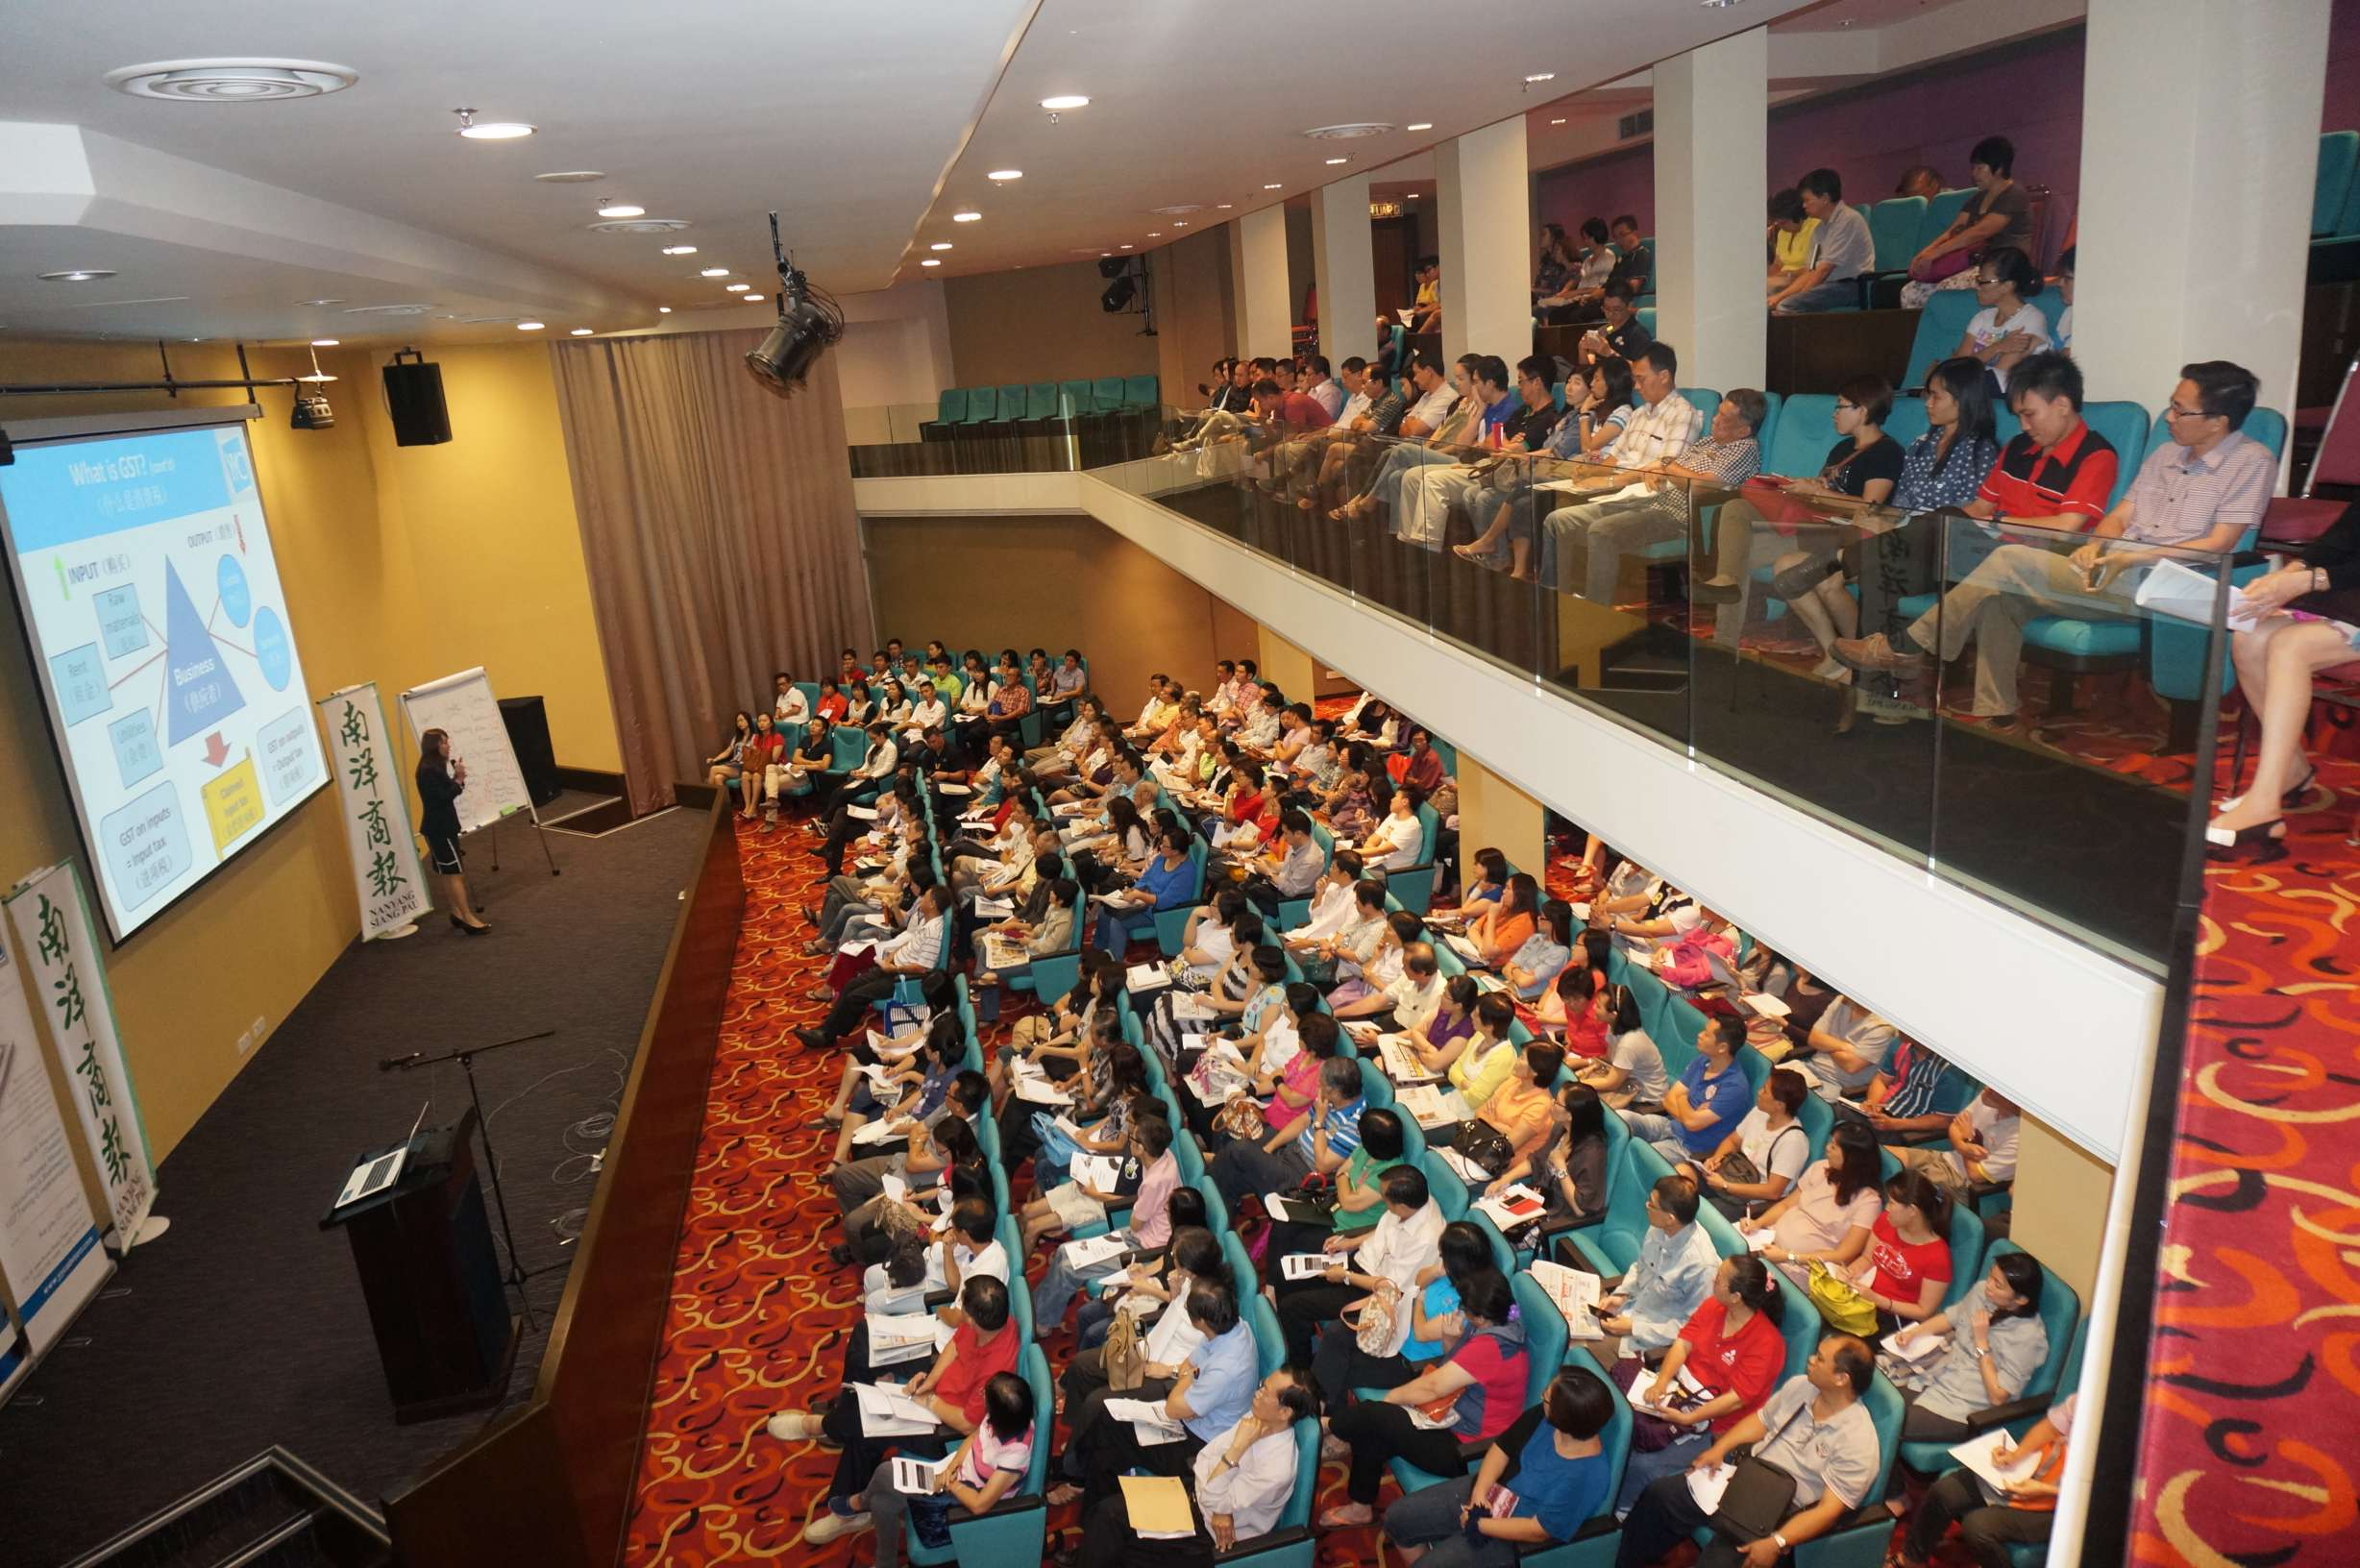 GST Overview at Nanyang - 27 September 2014